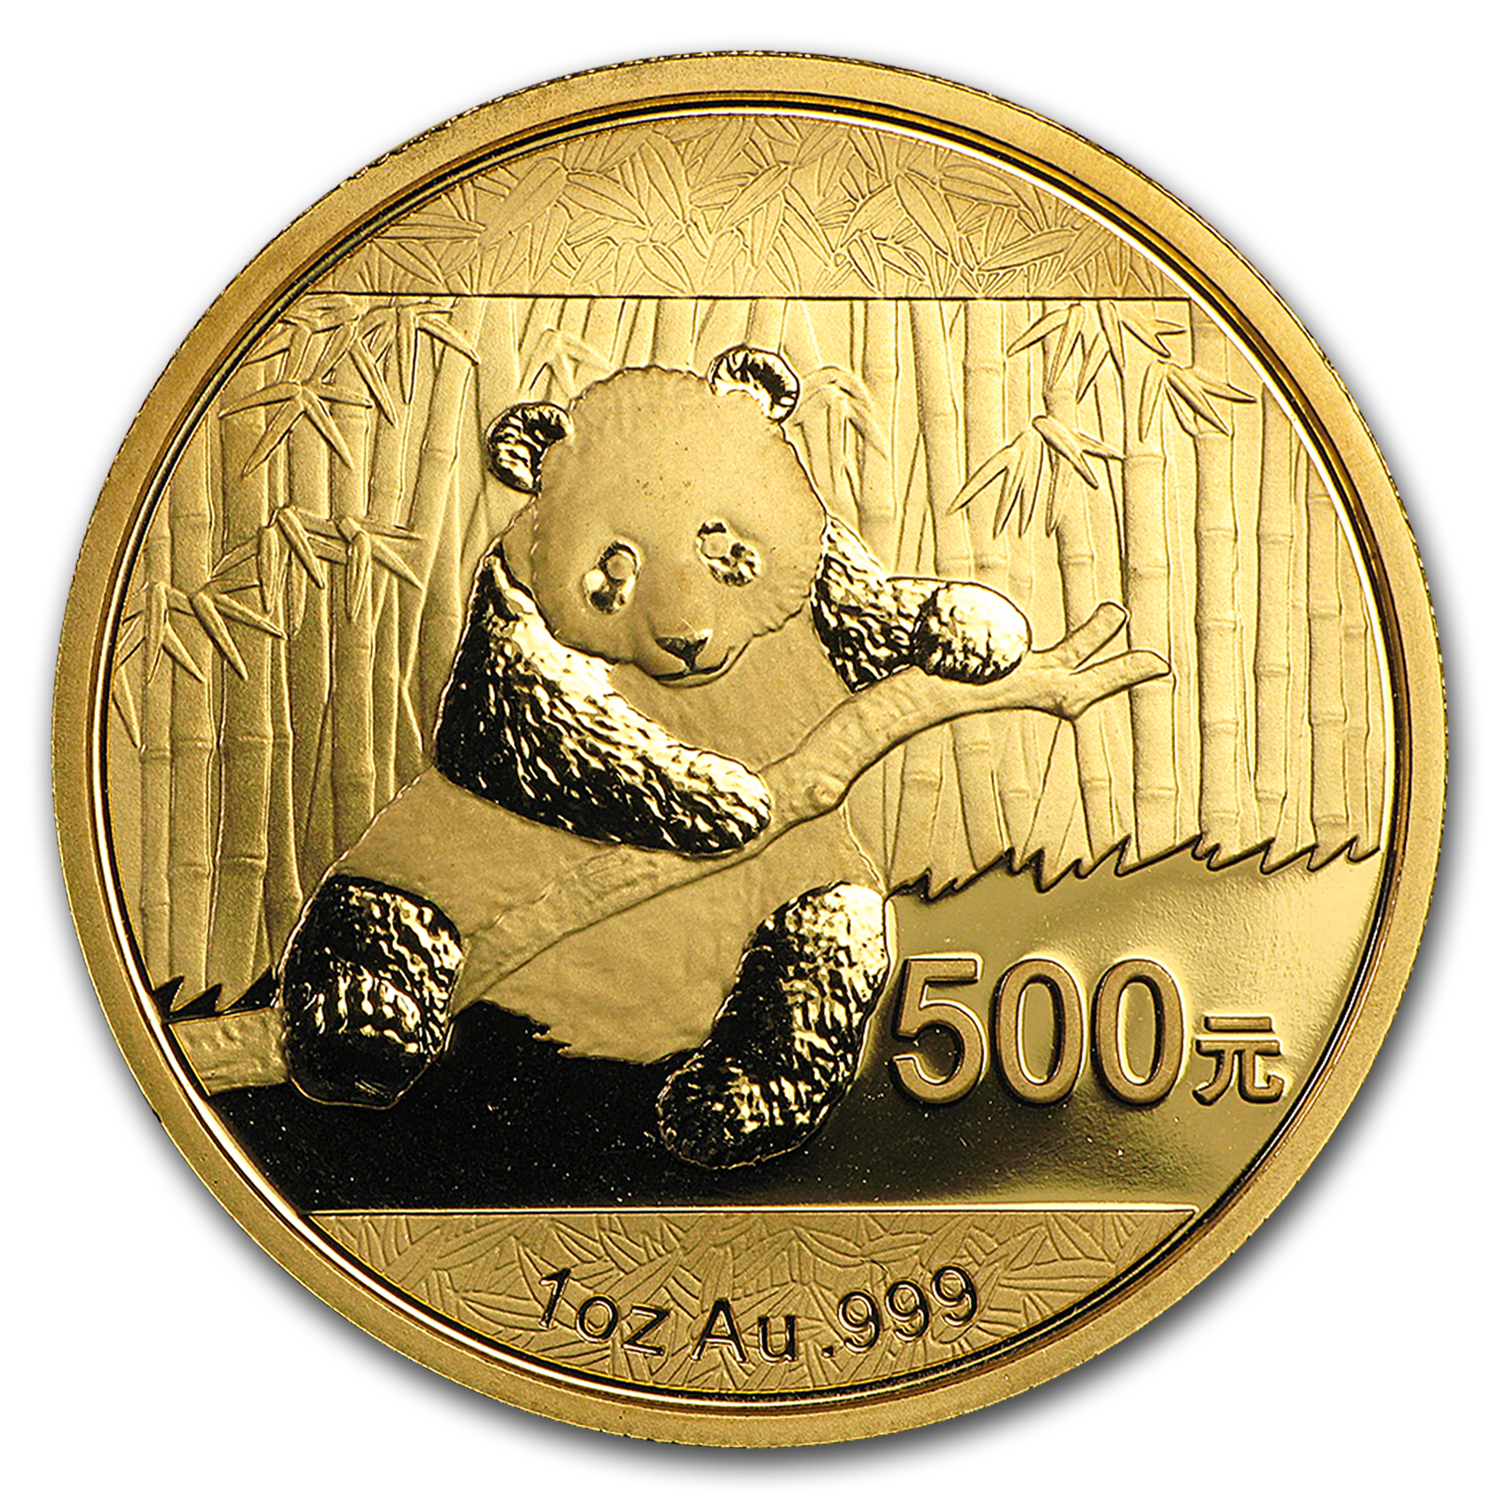 2014 China 1 oz Gold Panda BU (Not Sealed)